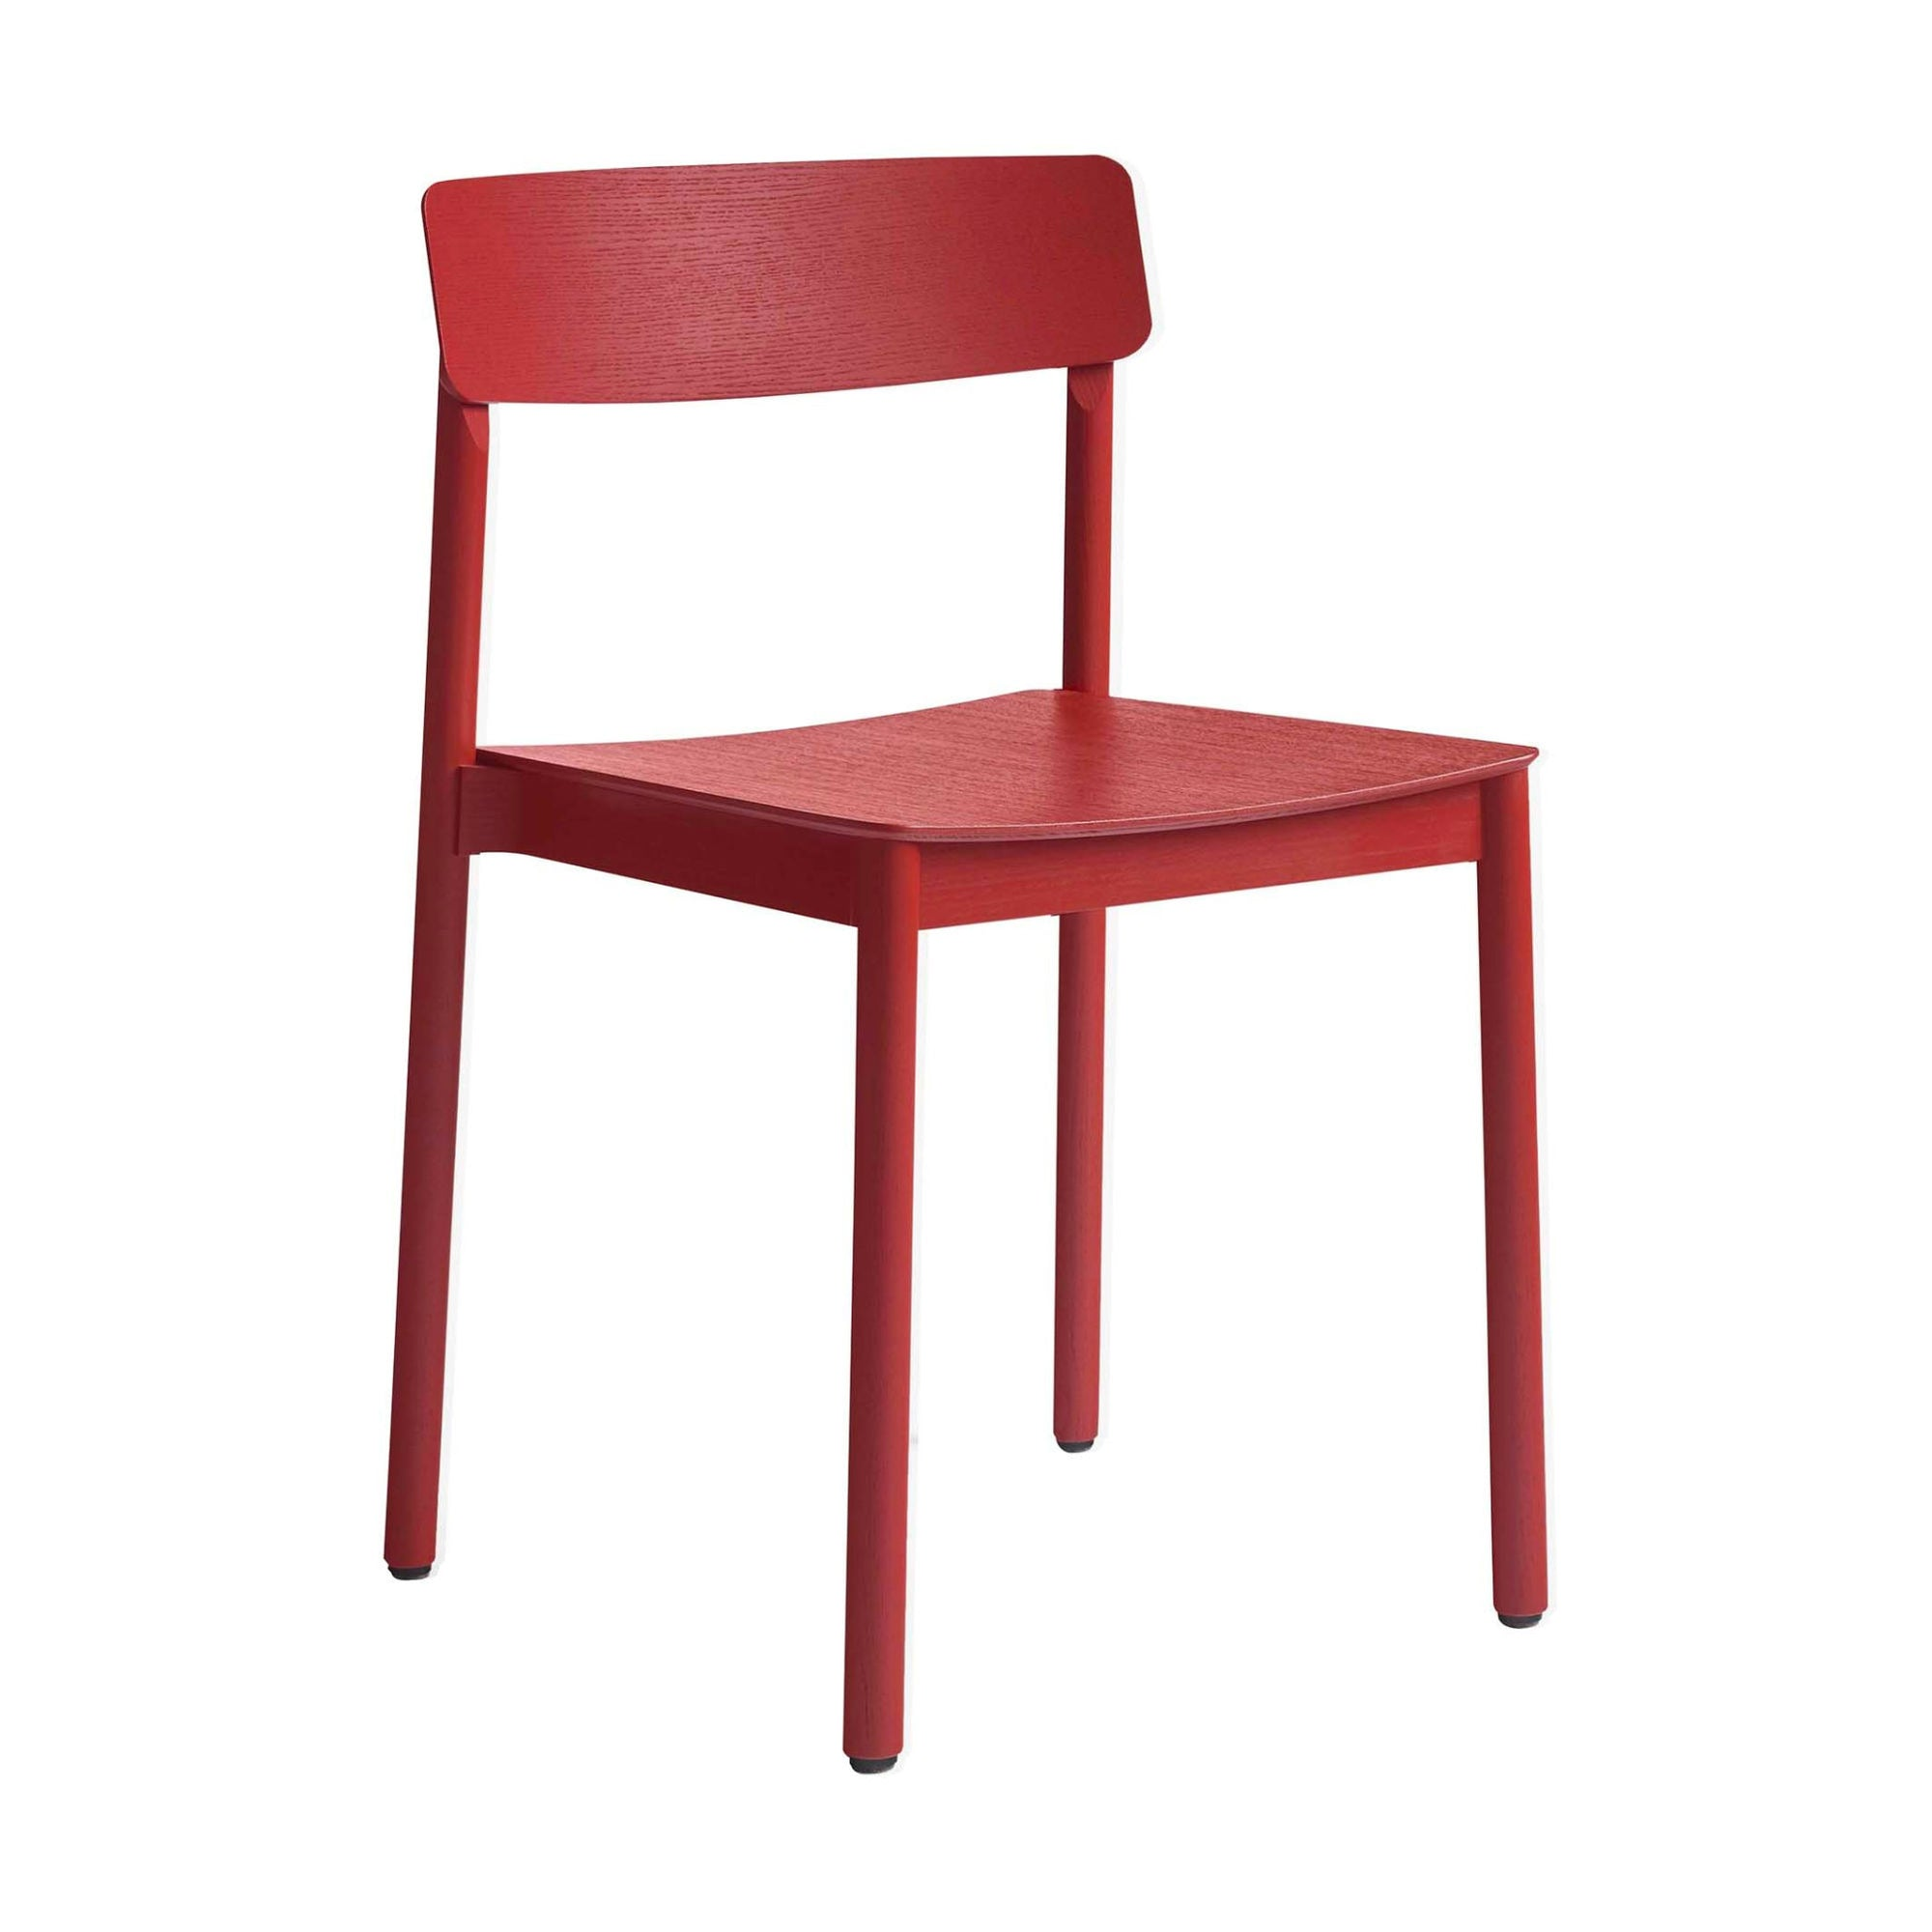 &Tradition Betty TK2 chair, maroon